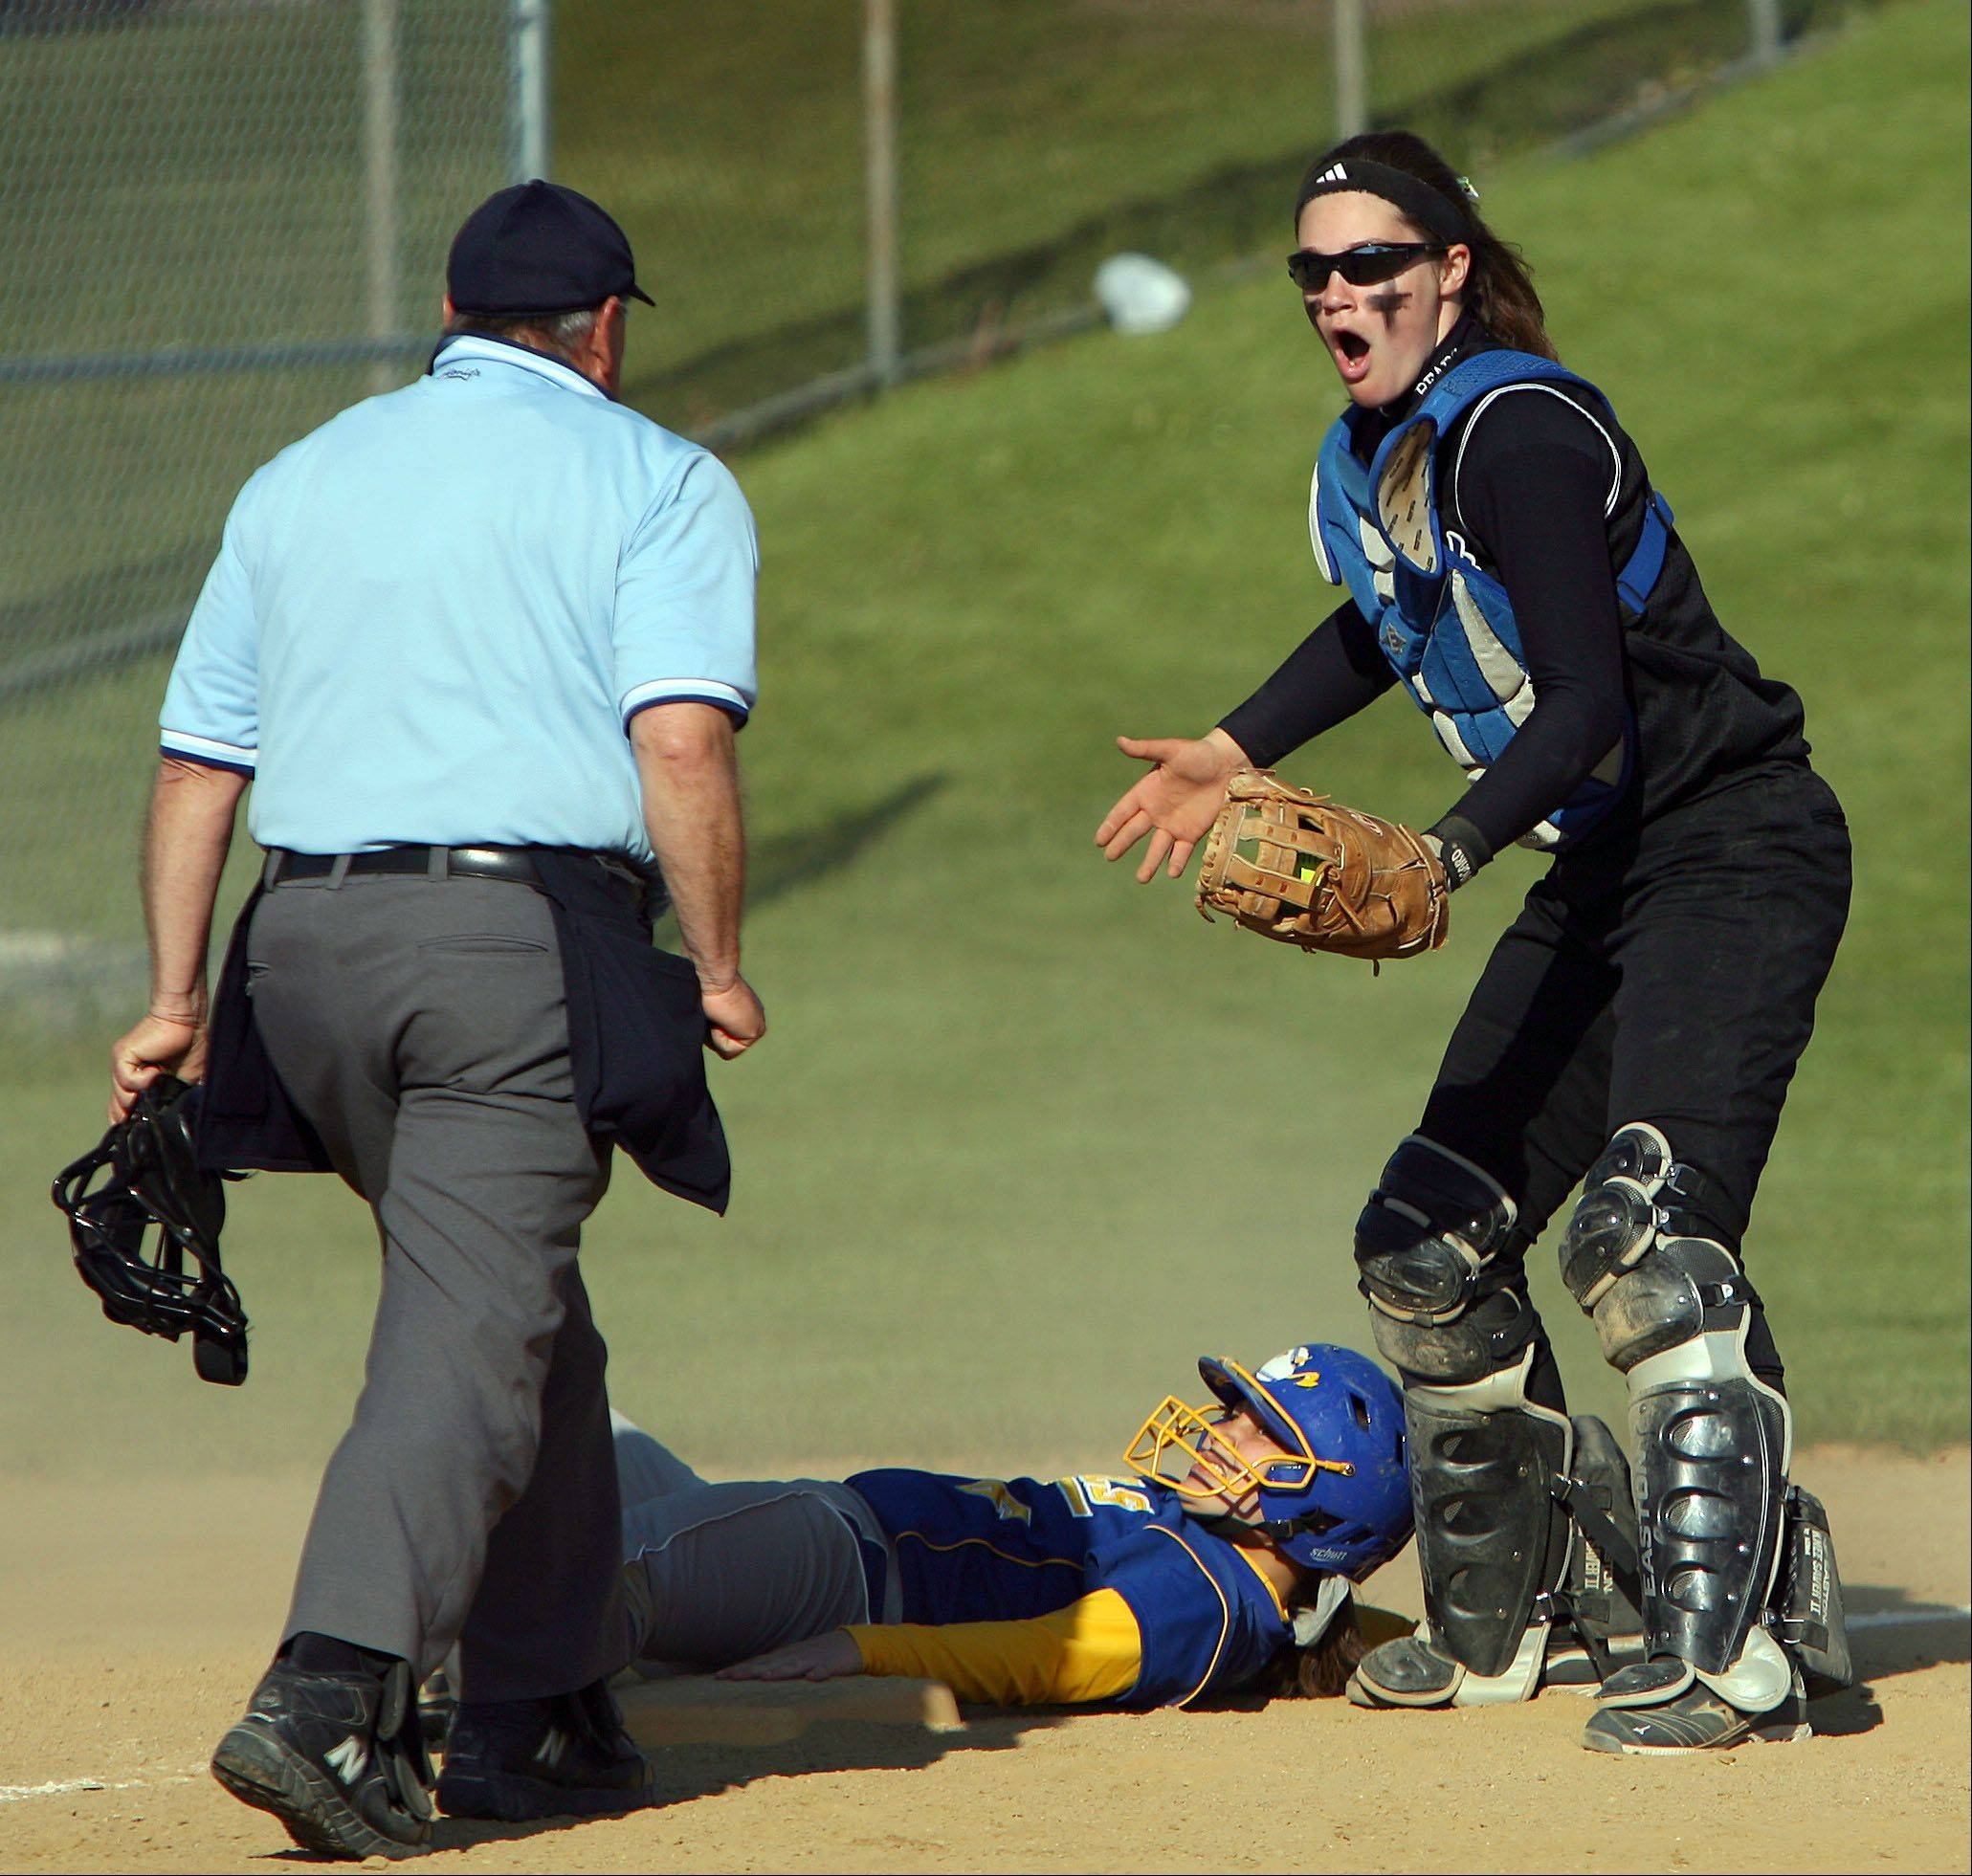 Lake Zurich's Christina Sandstedt, right, argues the call after Warren's Hayley Roane is called safe at third during their game Tuesday at Lake Zurich High School.